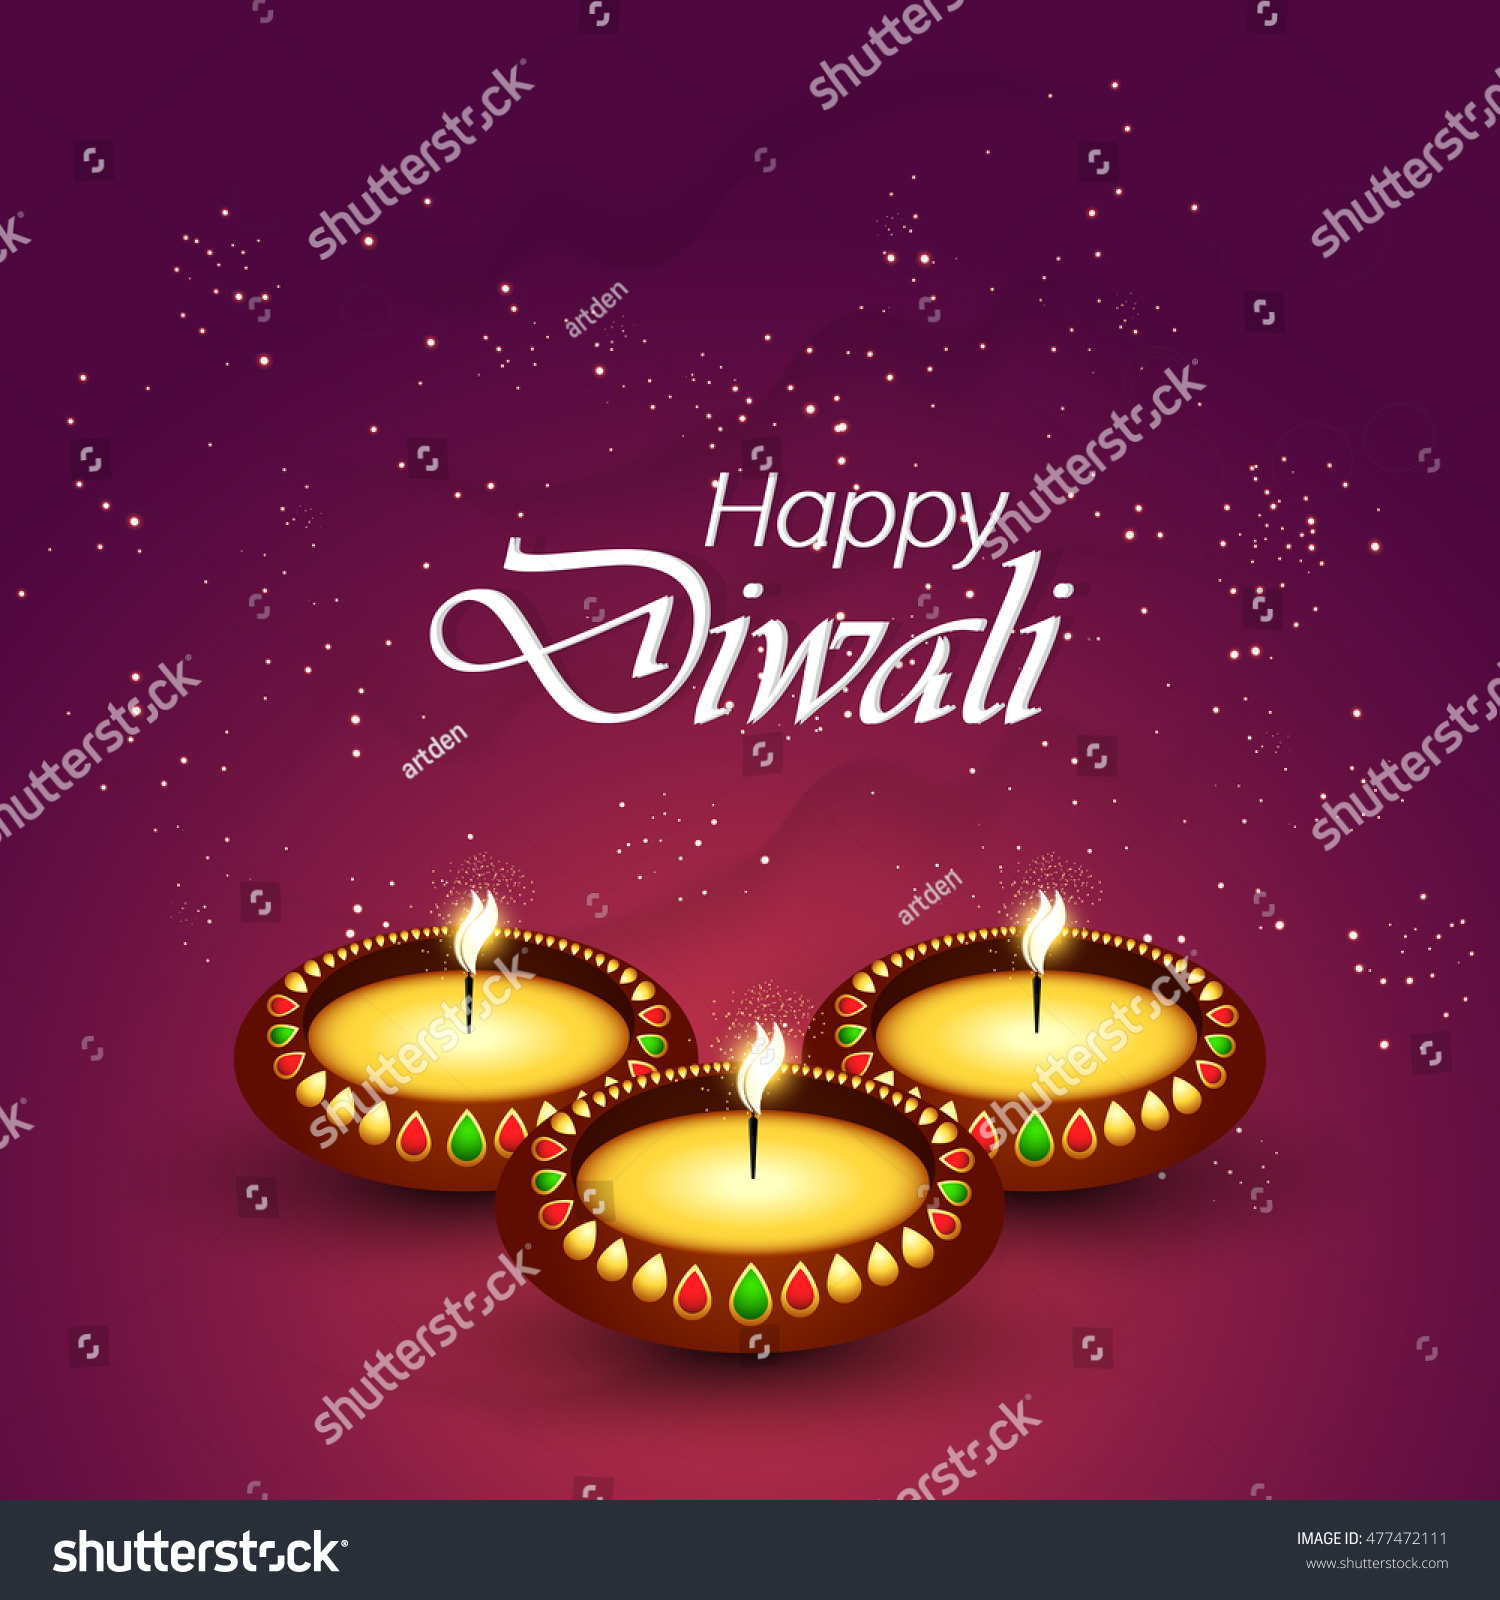 Creative Vector Abstract Happy Diwali Nice Stock Vector 477472111